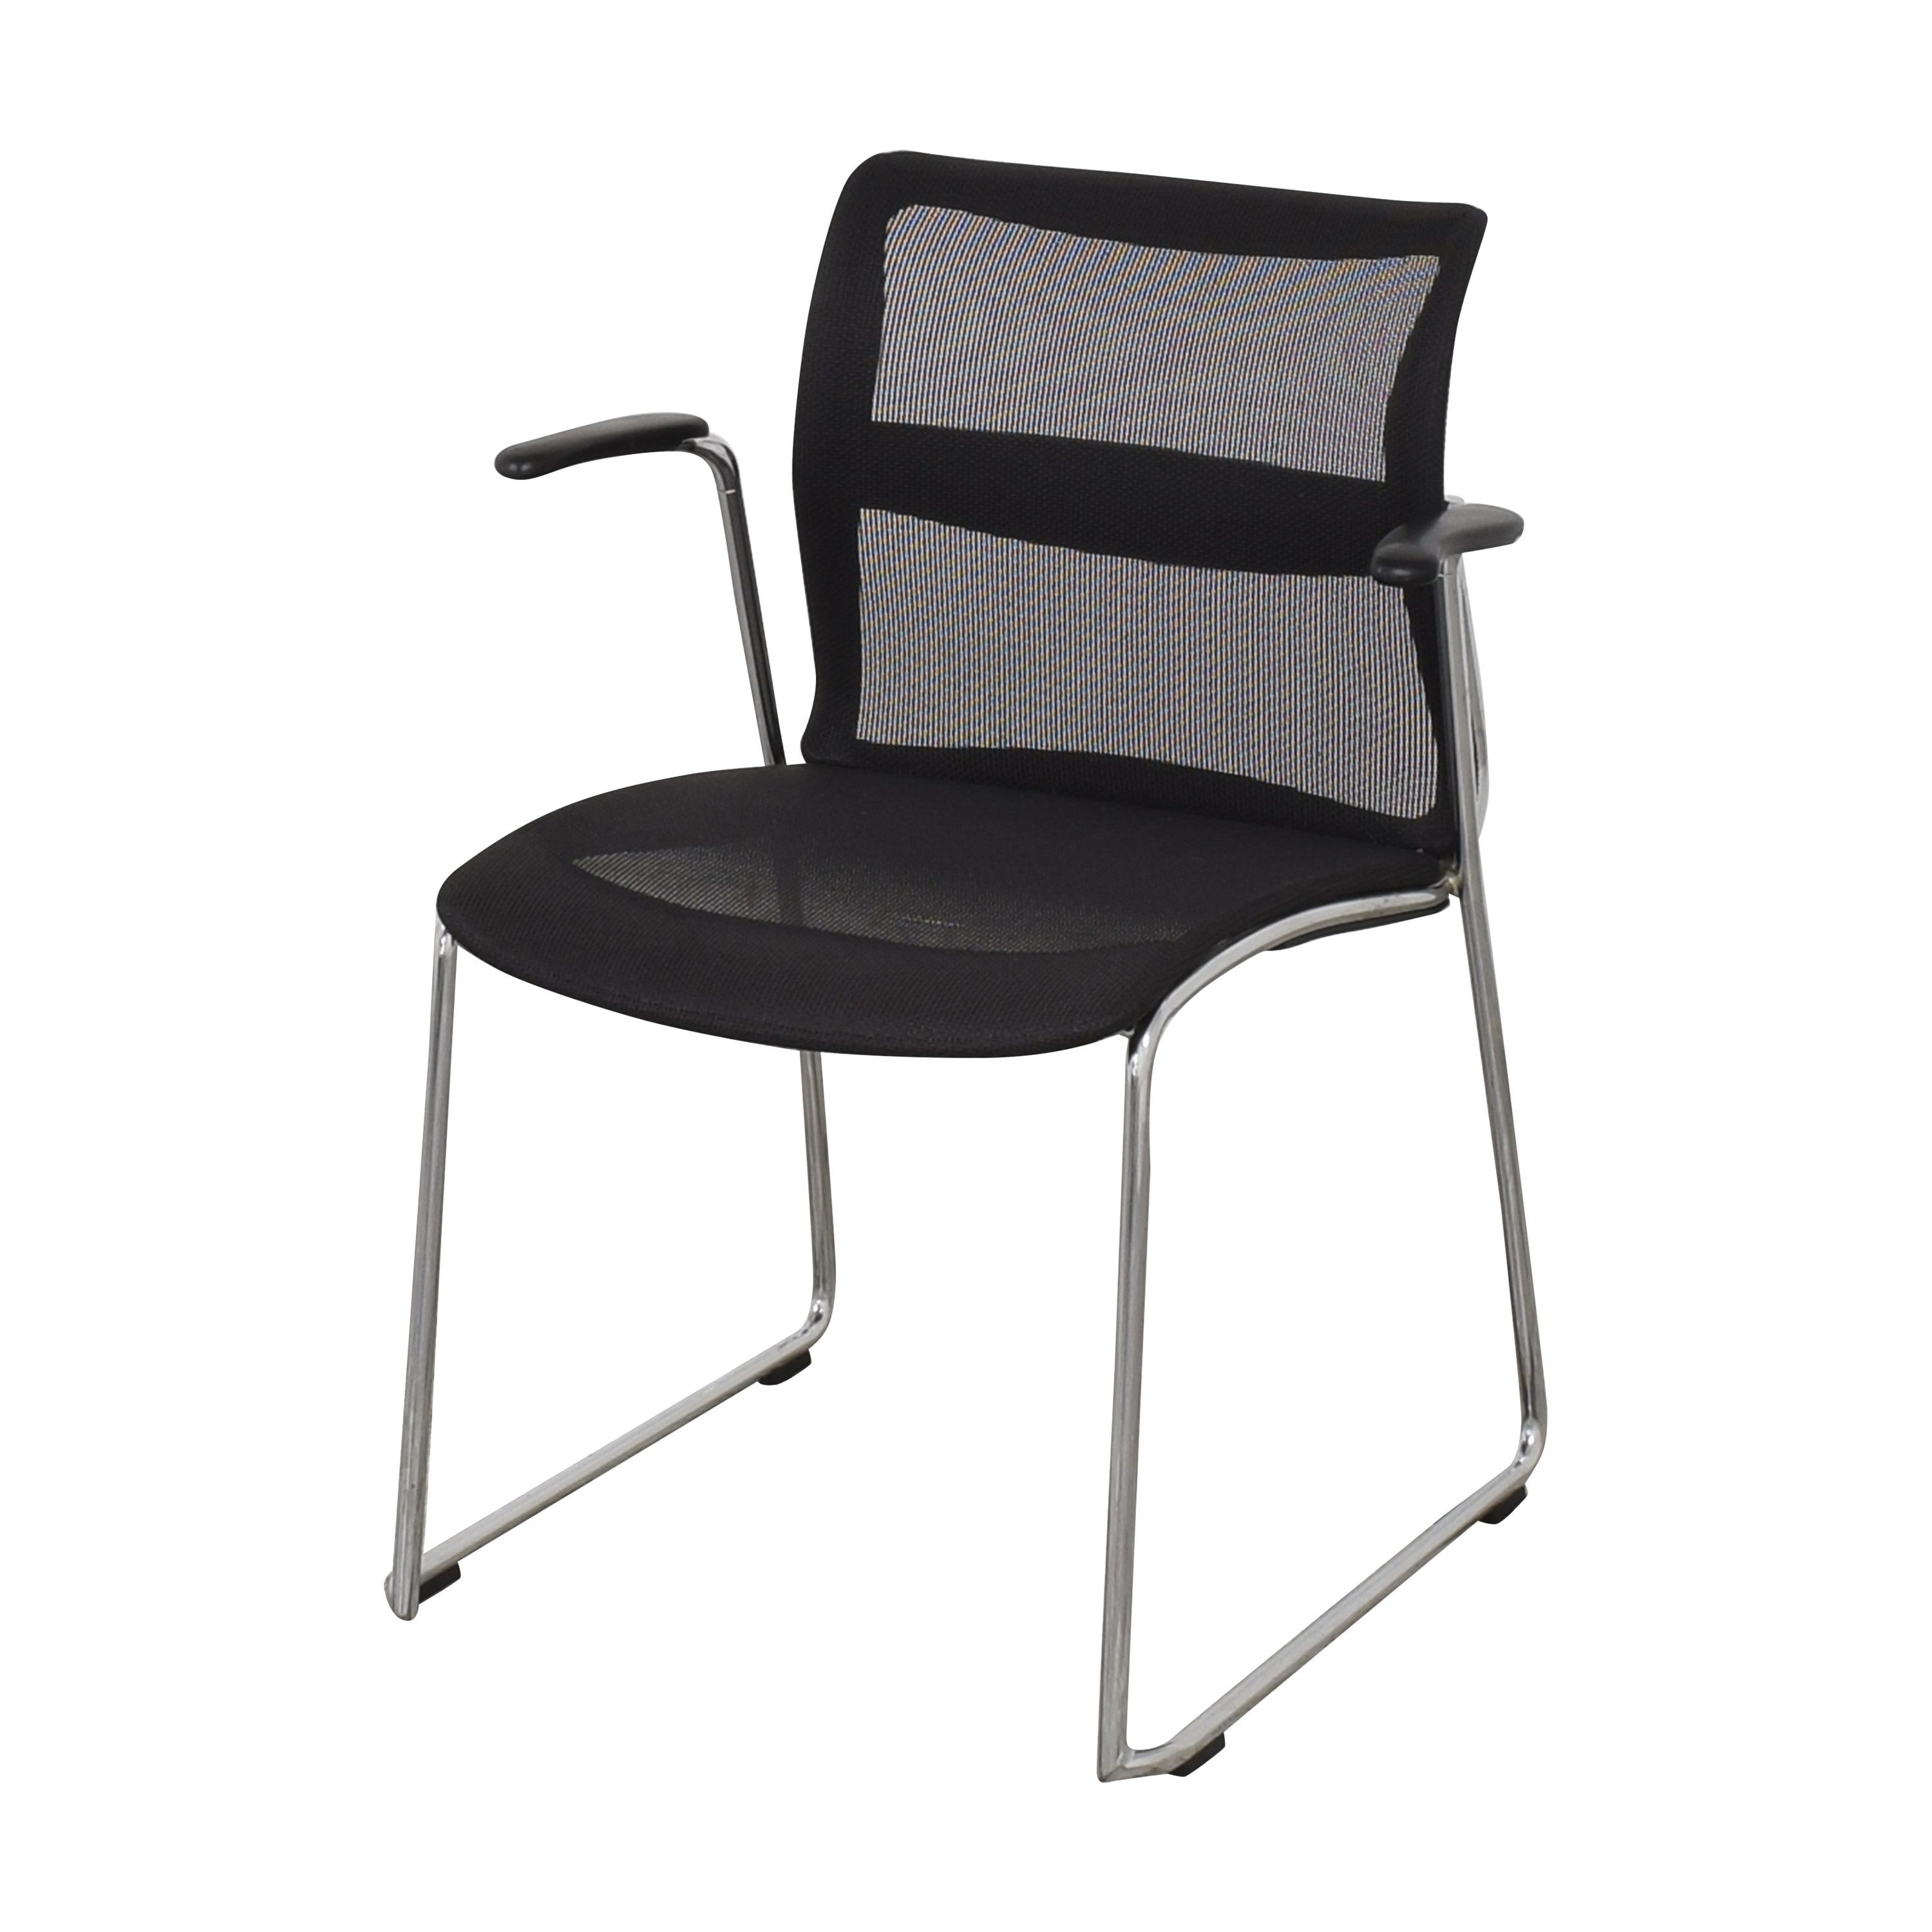 Stylex Zephyr Stacking Arm Chair / Chairs